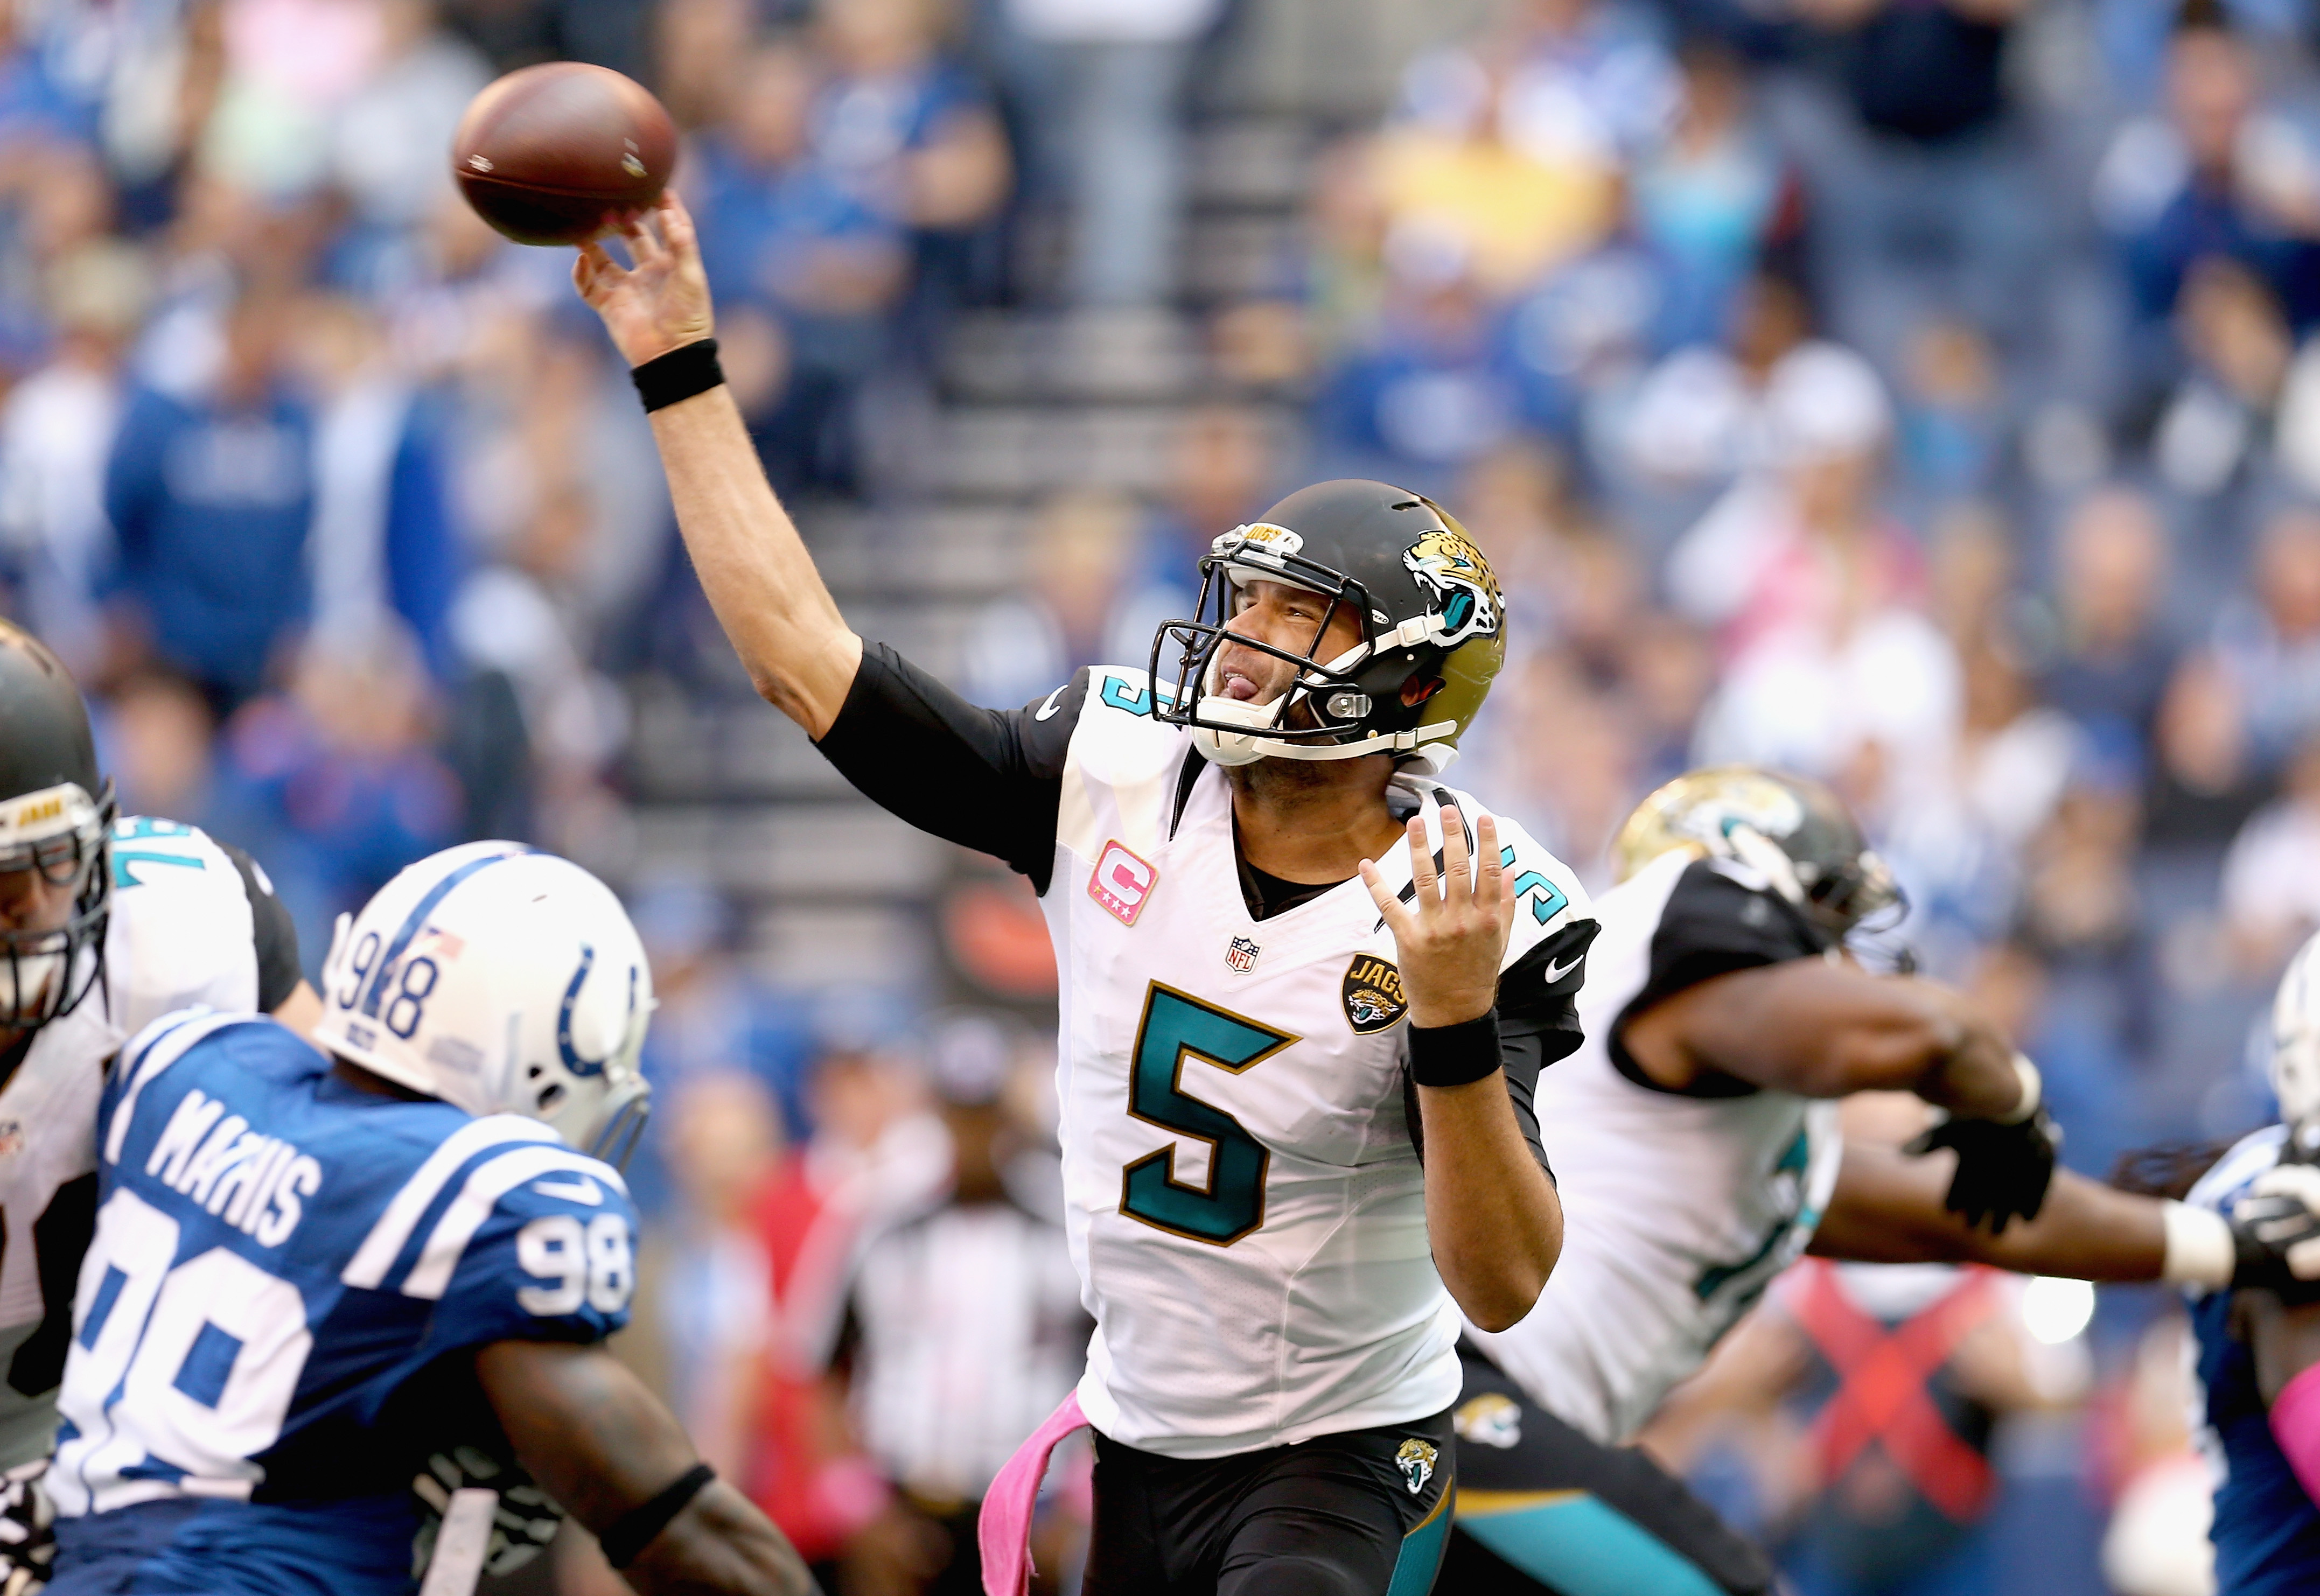 Bortles finished with 298 yards and a TD, but was unable to get the winning score vs. Indianapolis. (Getty)